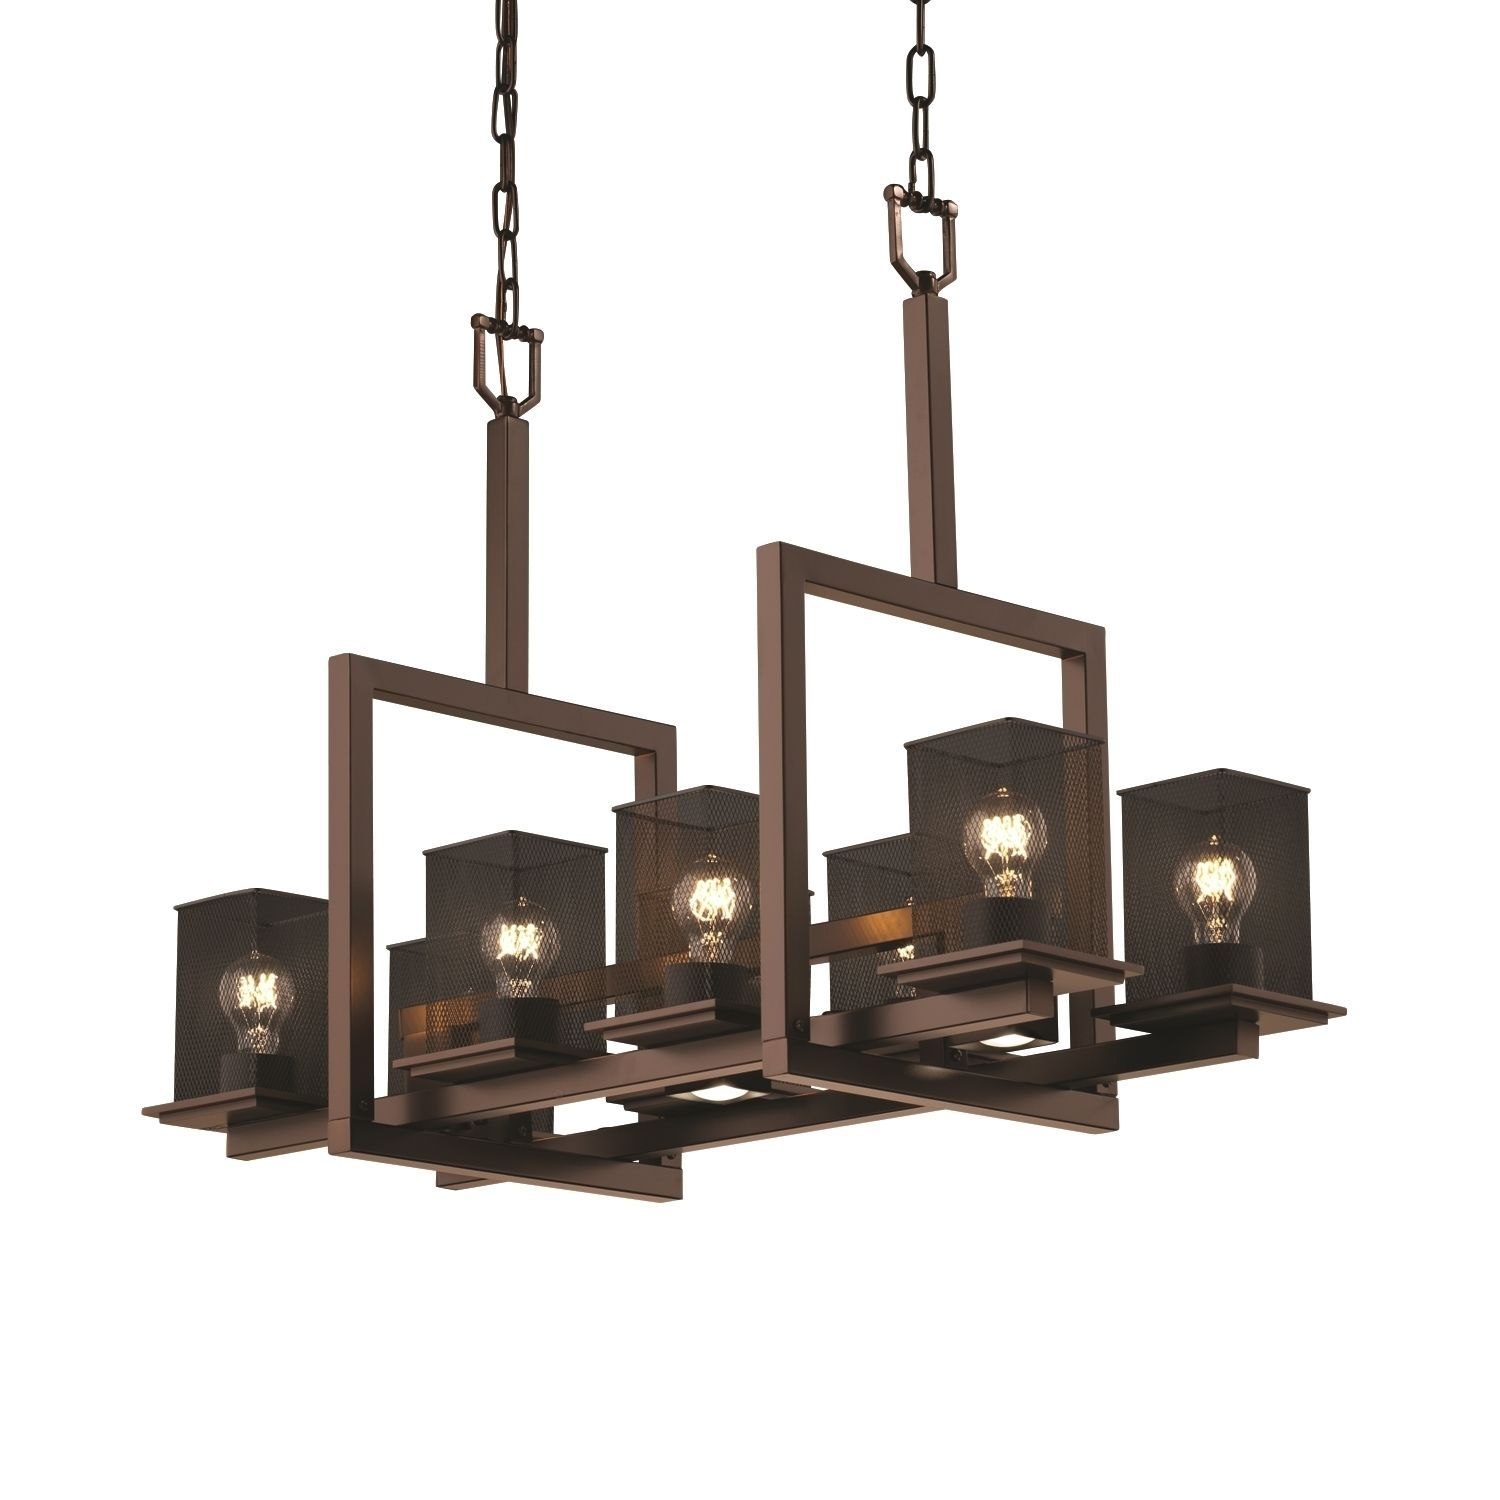 Justice design group montana 8 up and 3 downlight chandelier bronze justice design group montana 8 up and 3 downlight chandelier bronze arubaitofo Images